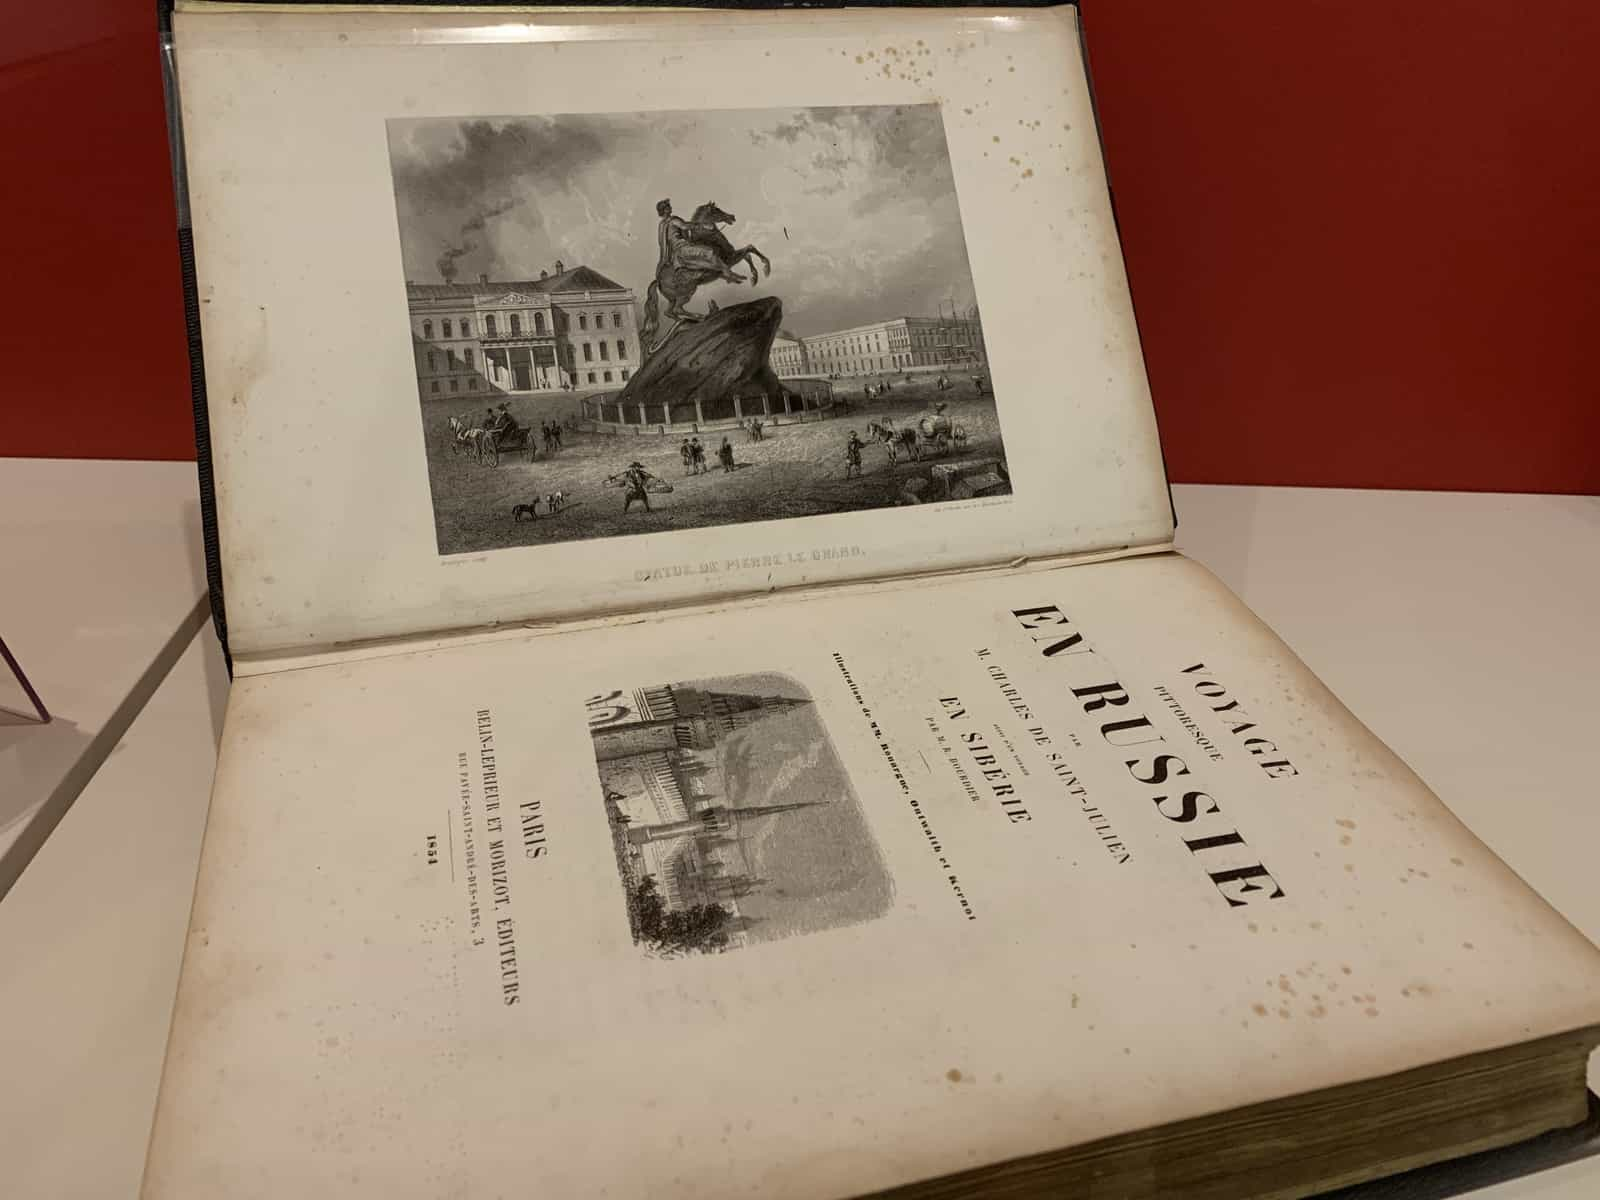 The book is open to its title page. An illustration of the equestrian statue of Peter I in Saint Petersburg is opposite.